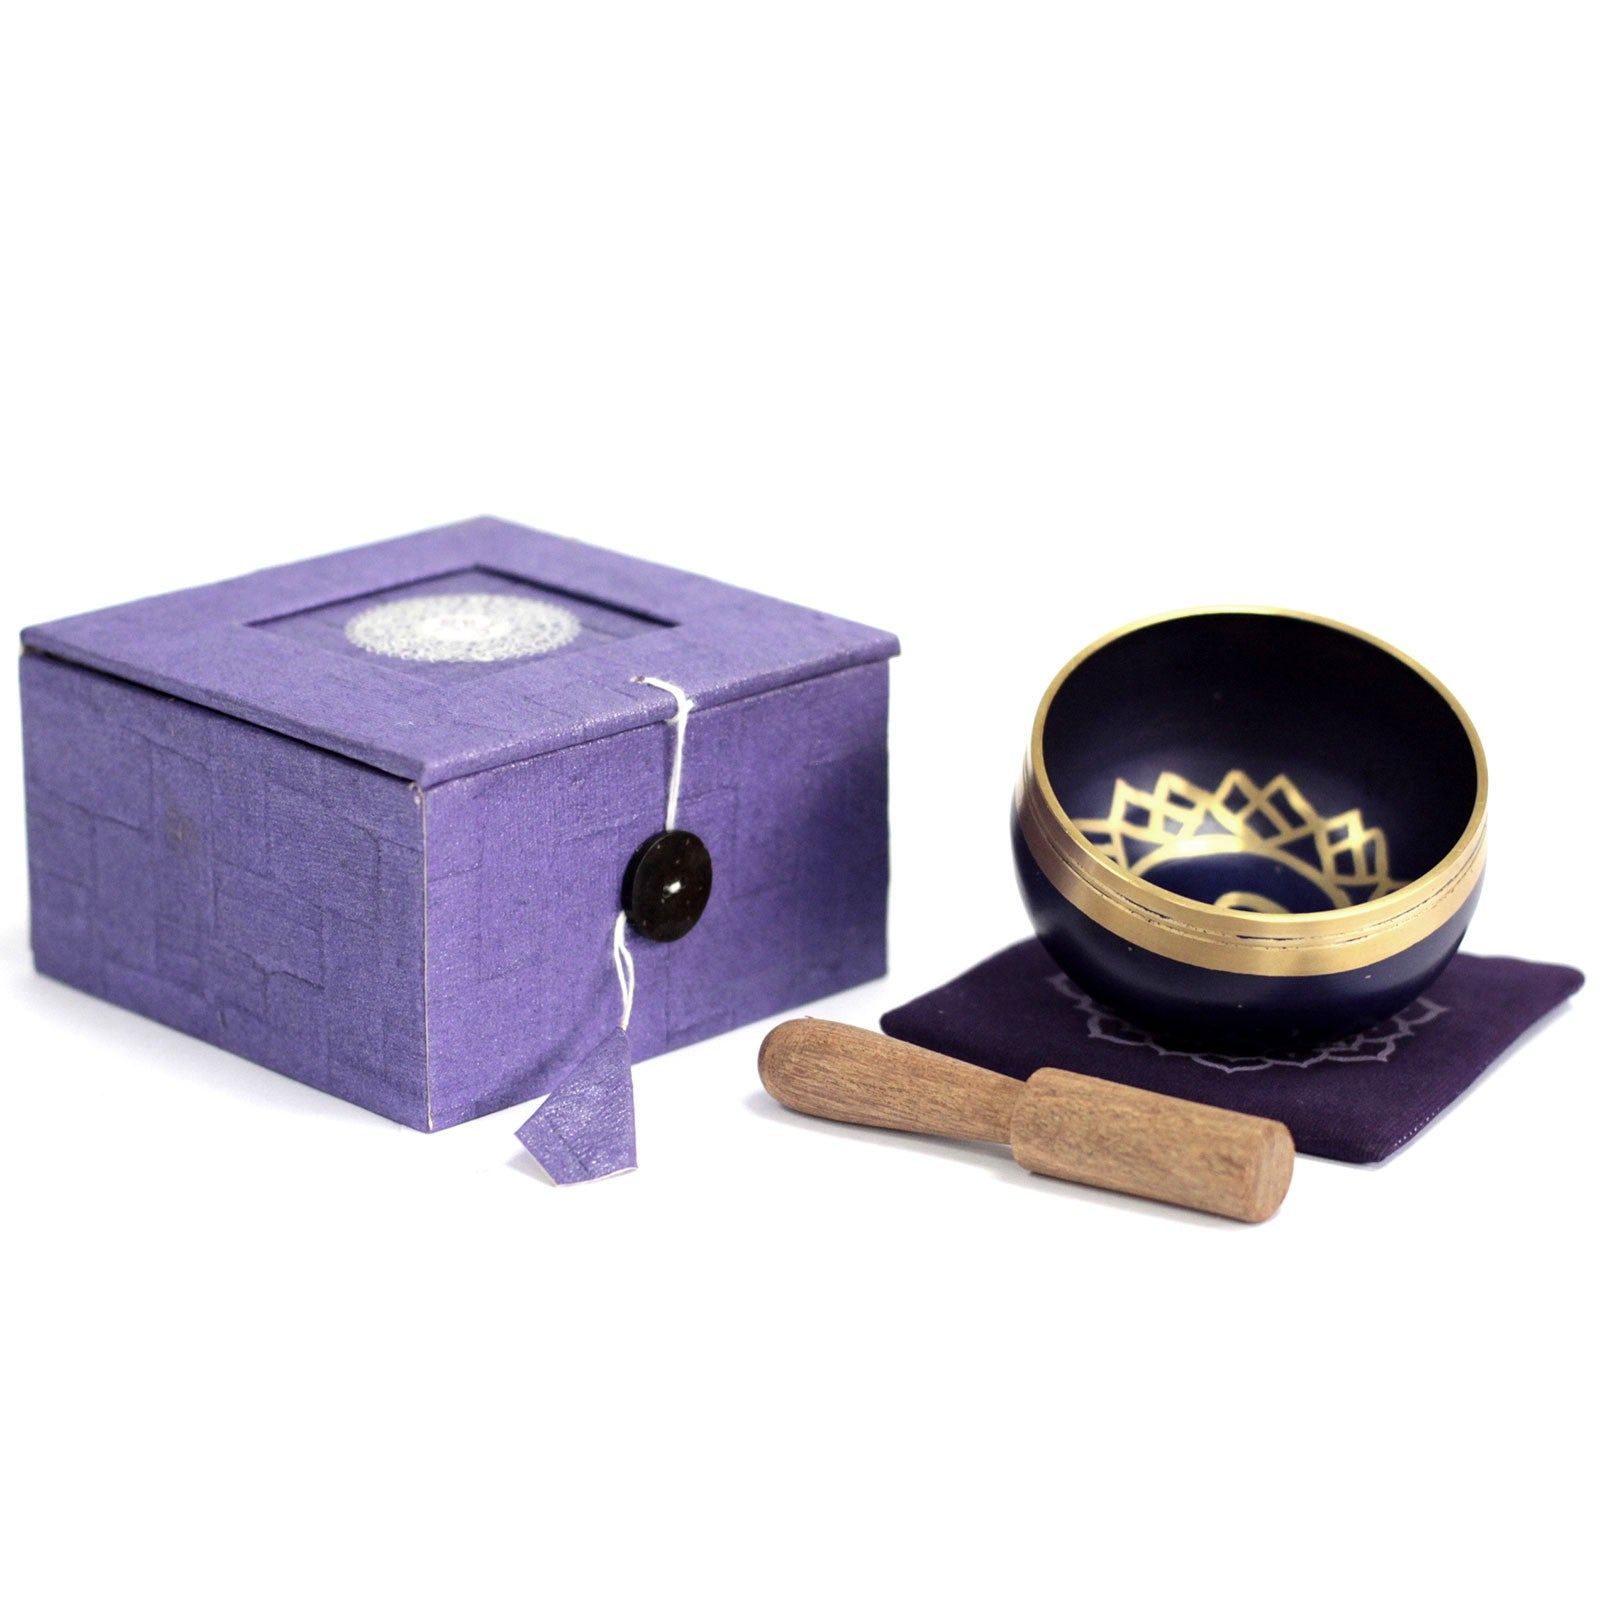 Chakra Singing Bowl - Crown, Musical Instrument & Orchestra Accessories by Gifts24-7